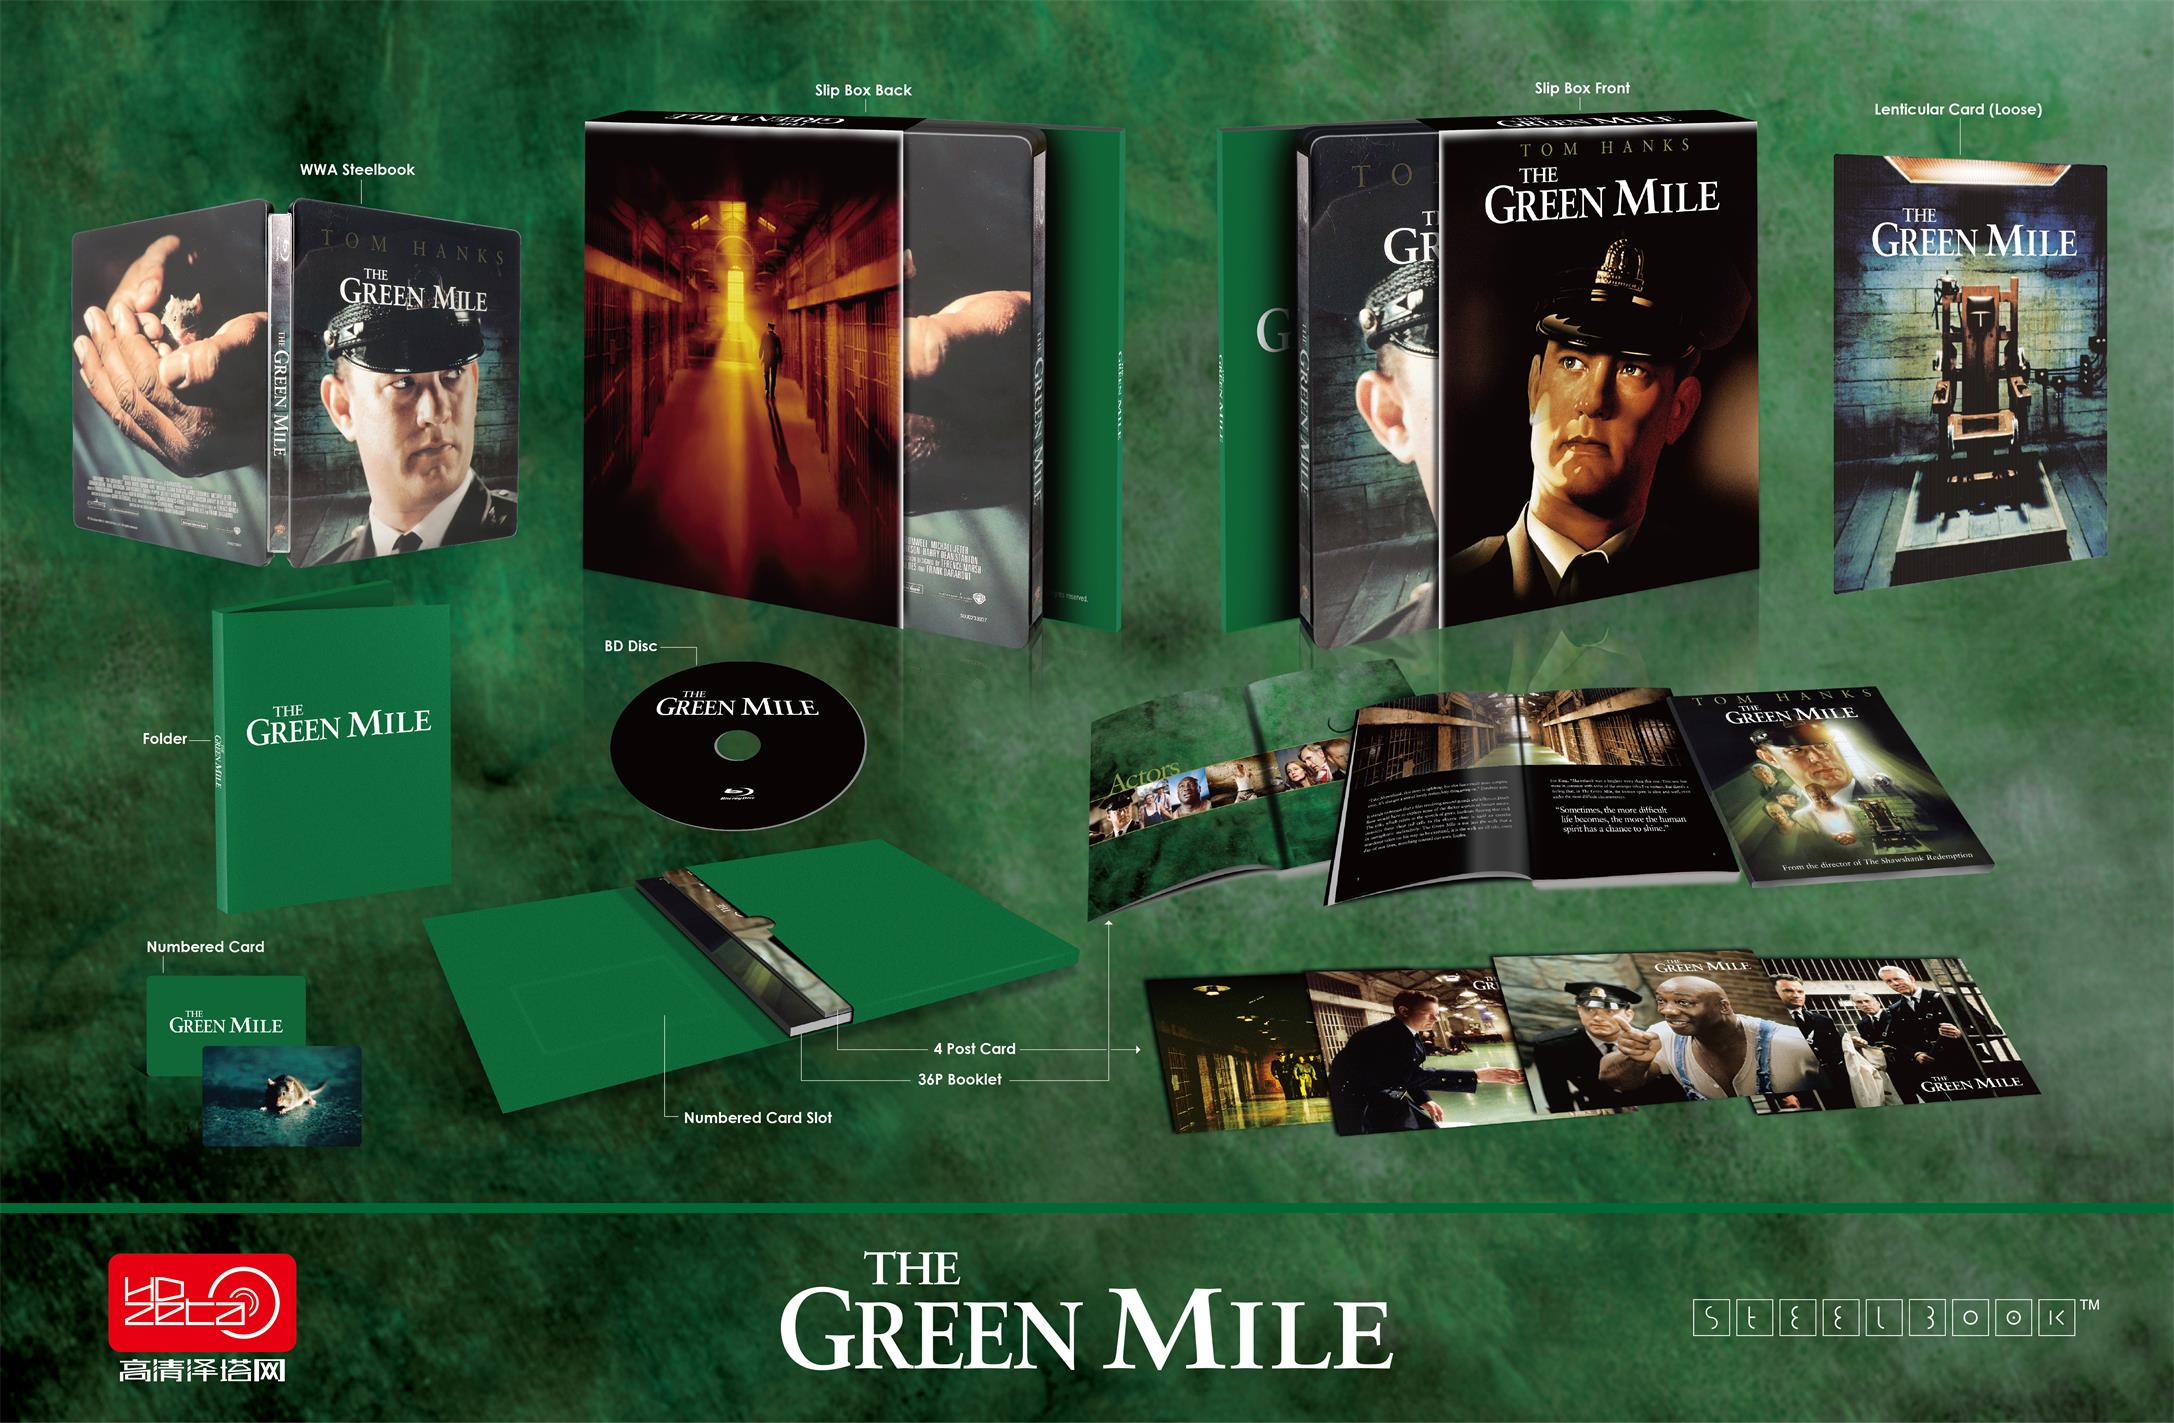 The Green Mile HDzeta Special Edition